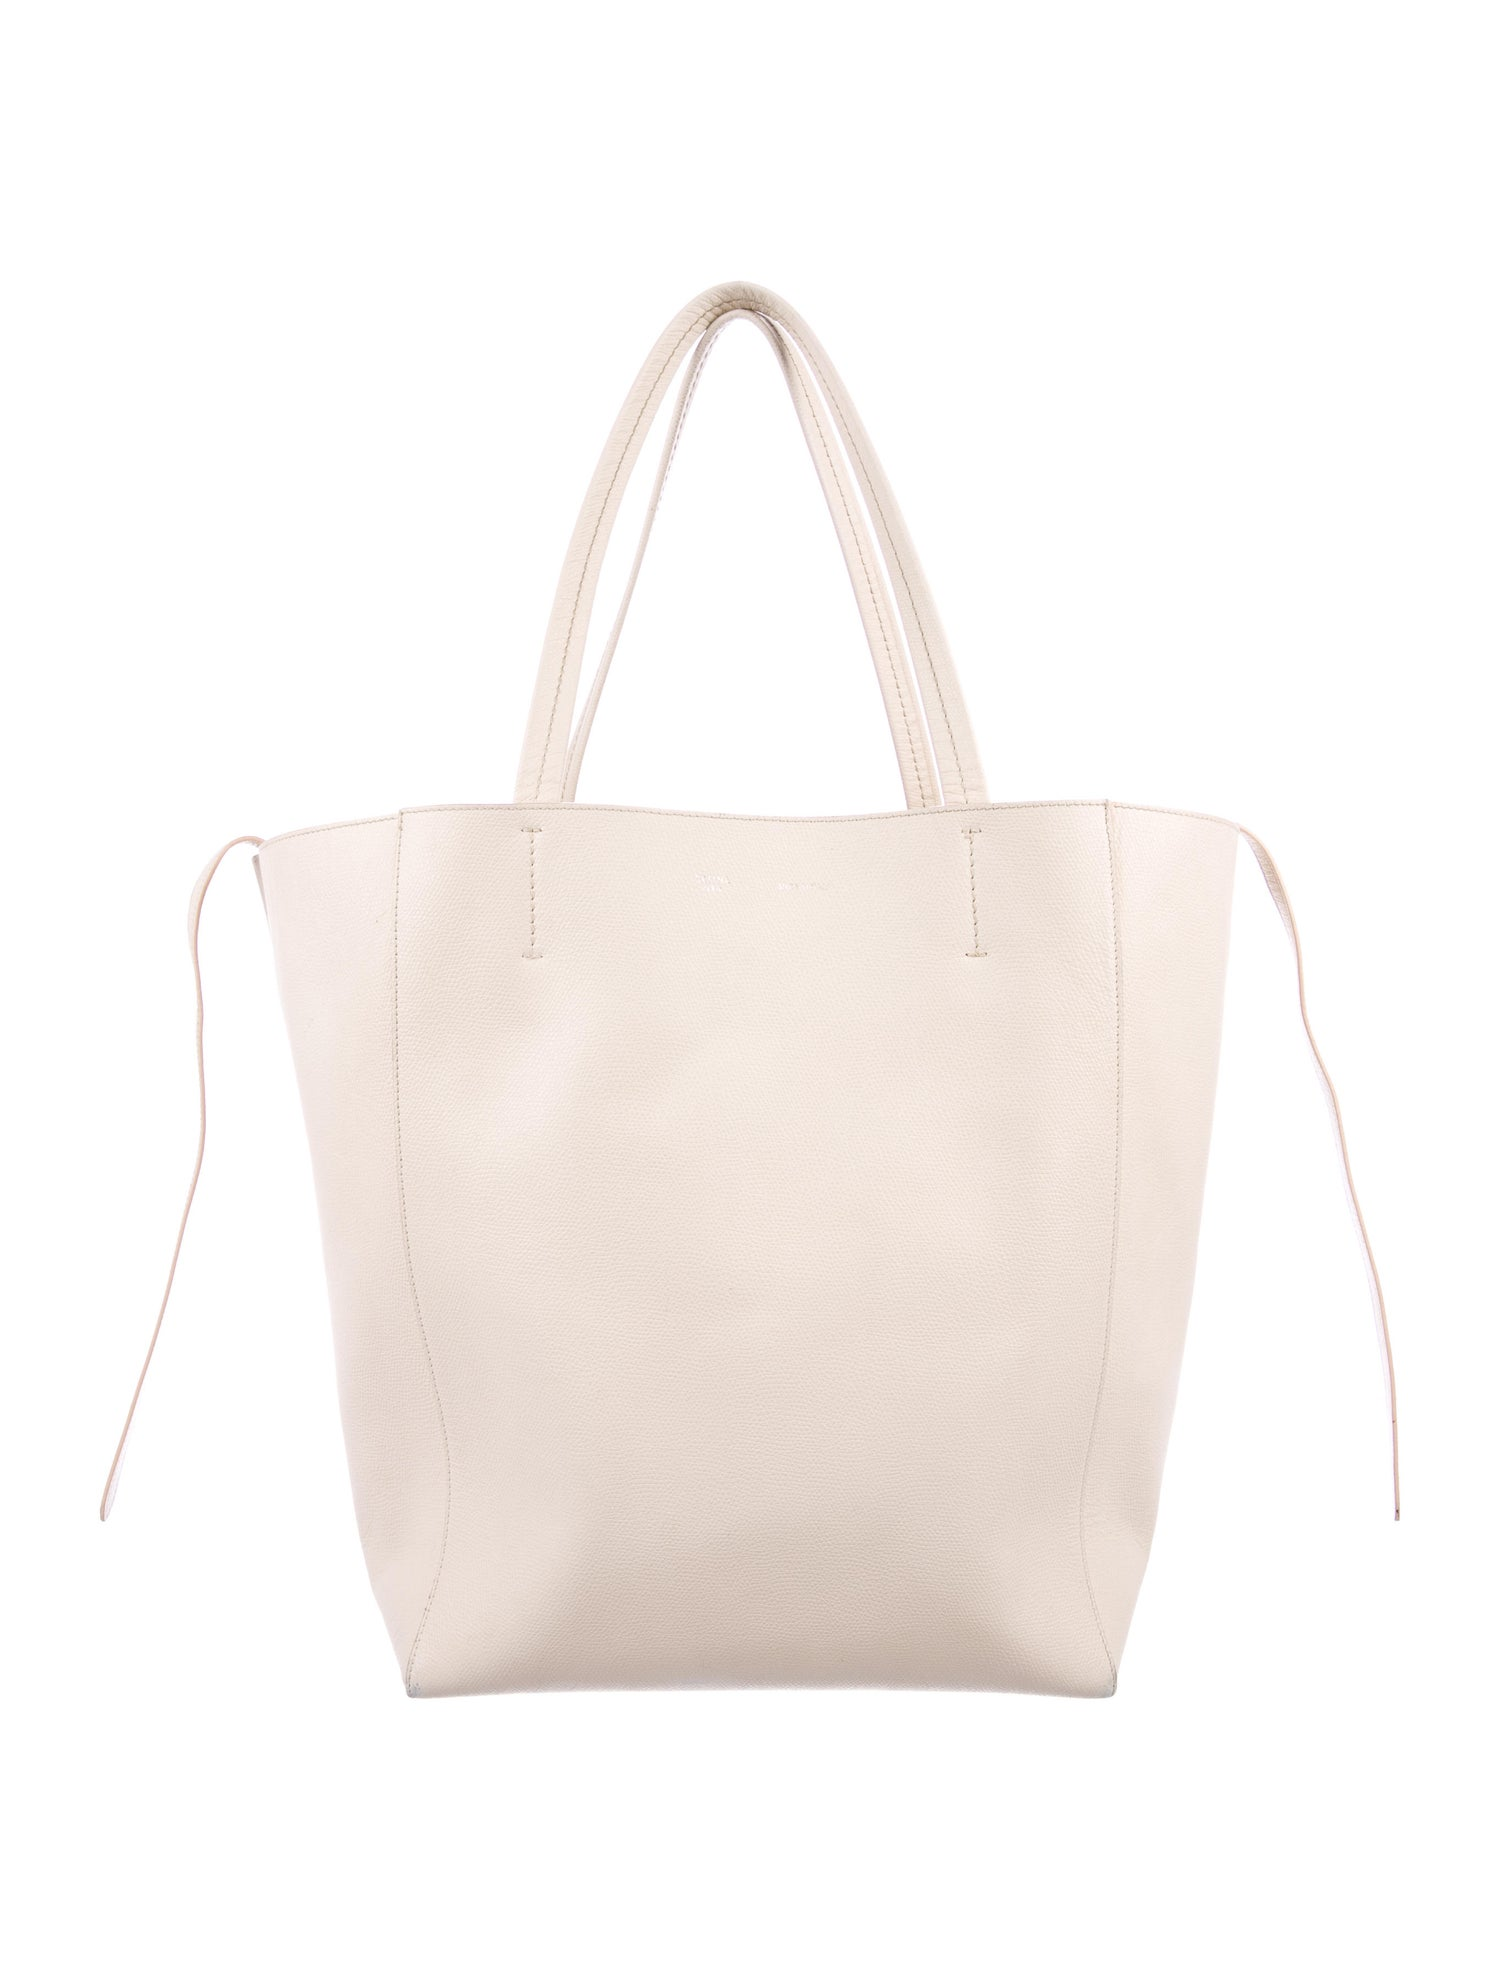 Medium Cabas Phantom Tote by Céline, available on therealreal.com for $1095 Alessandra Ambrosio Bags Exact Product